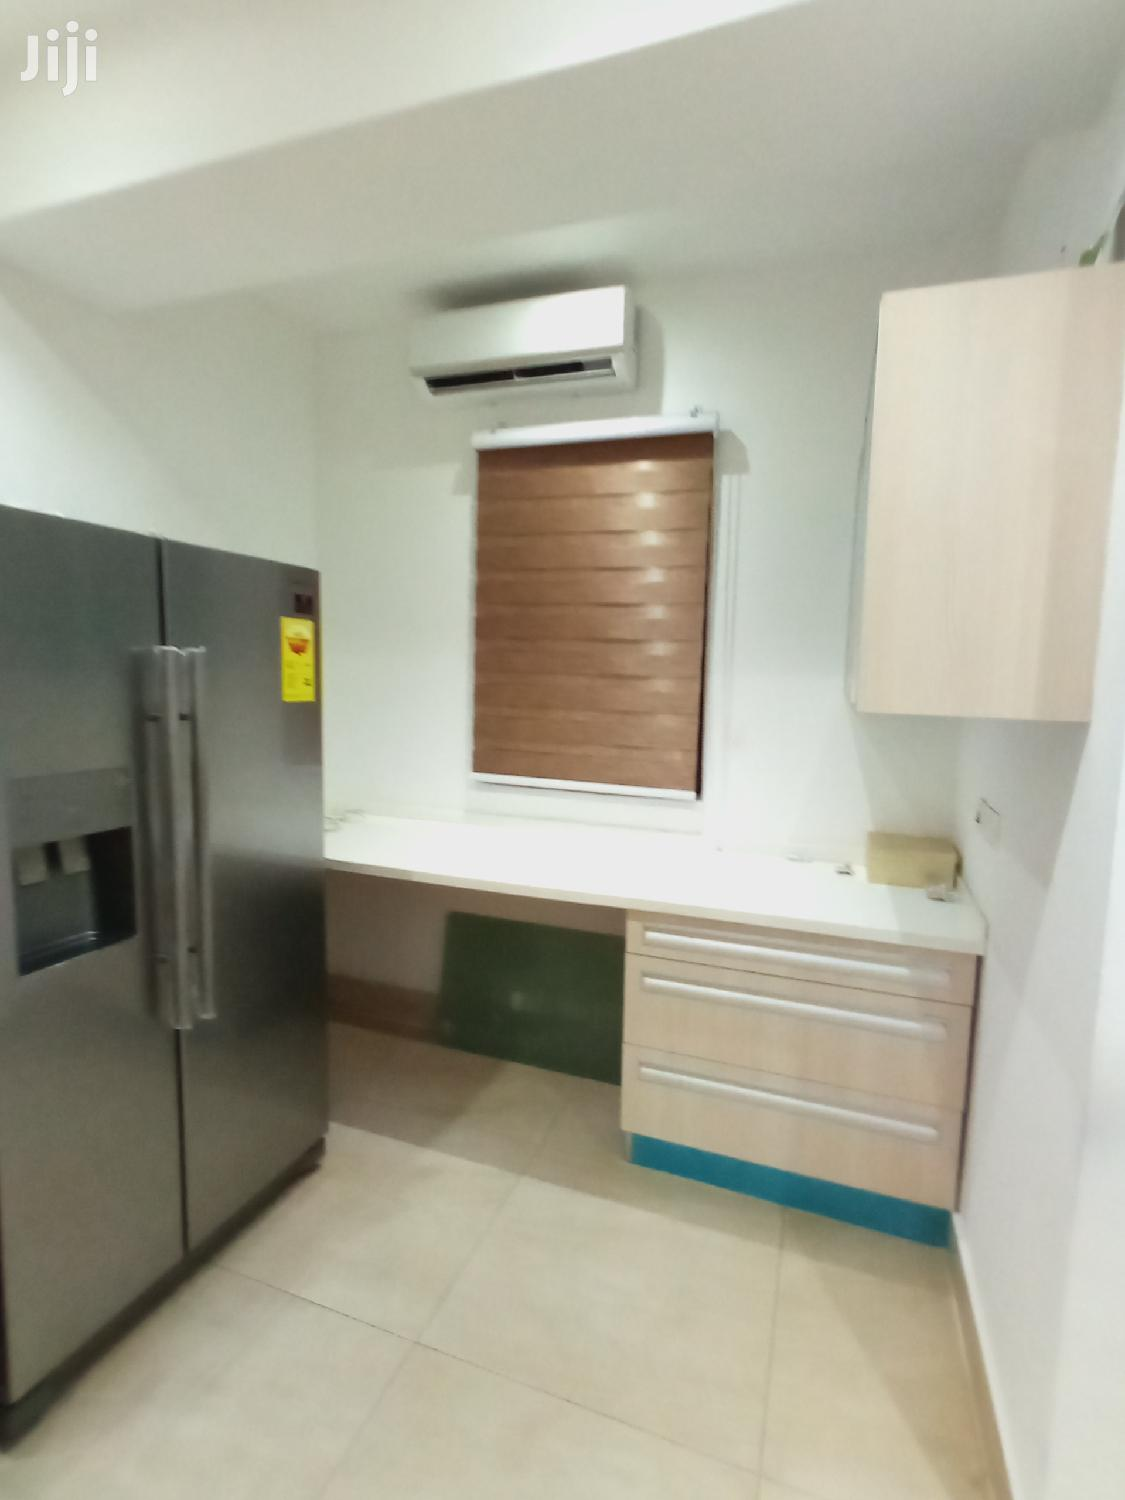 3 Bedroom Apartment For Sale At Airport | Houses & Apartments For Sale for sale in Airport Residential Area, Greater Accra, Ghana